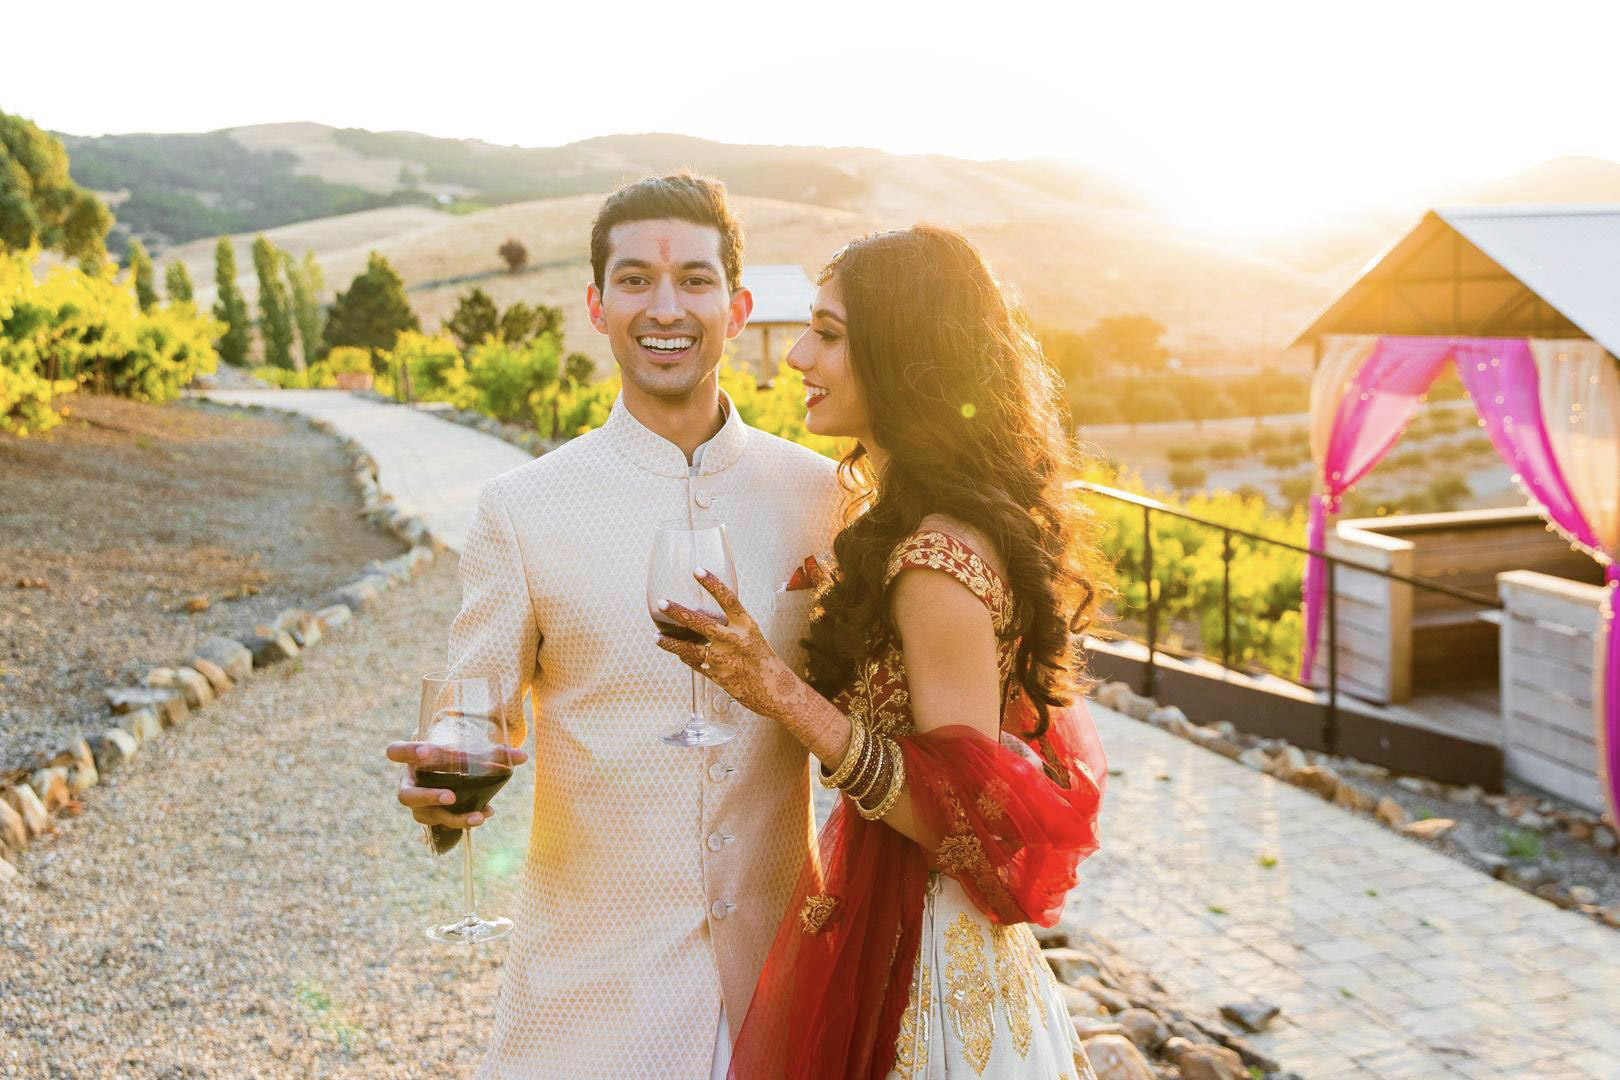 Indian couples posing in a pre-wedding event while holding wine